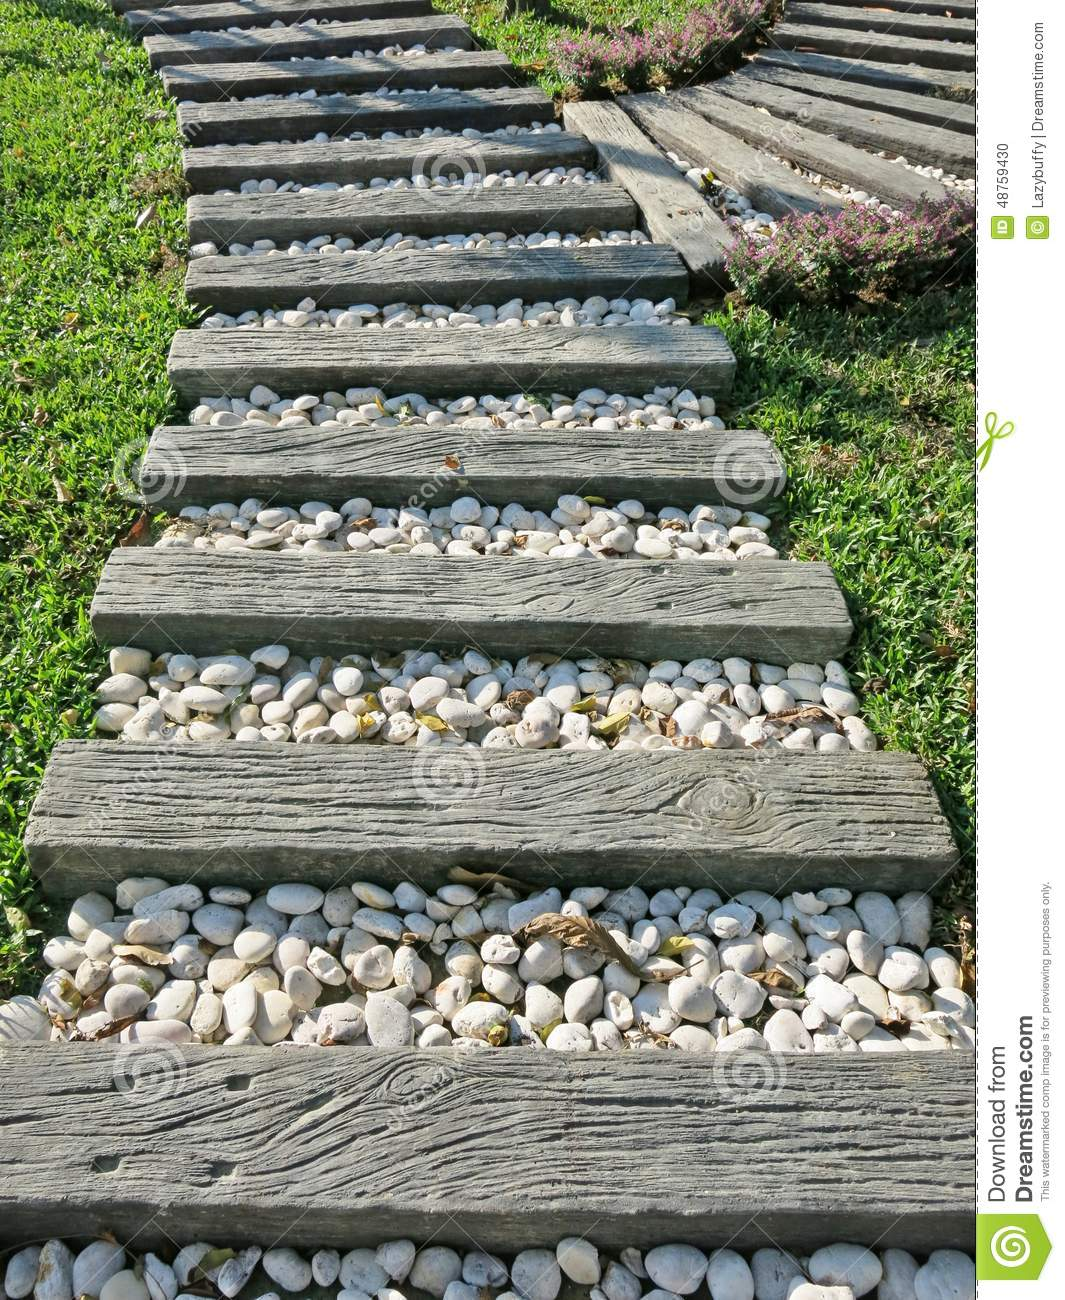 Diy Rustic Bed Frame Ceramic Tile Picture Frames L  Bases moreover Single Level Home Blue Prints in addition 28 further Stock Photo Wood Small White Rocks Pathway Grass Garden Beautiful Image48759430 together with Economical Small Cottage House Plans. on small rustic house plans